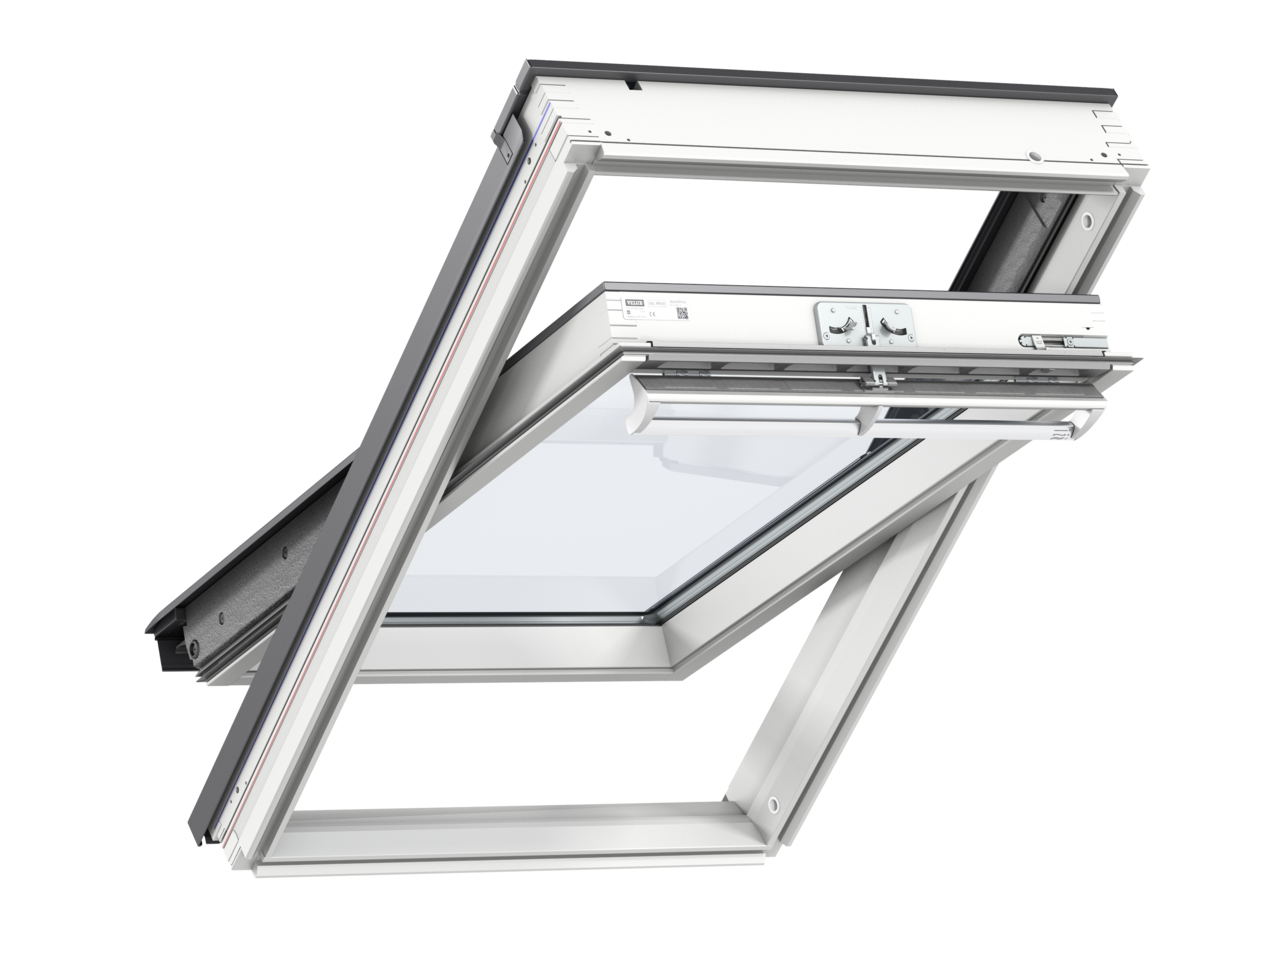 Velux GGL MK08 780 x 1400mm Centre Pivot 70QPane Roof Window - White Painted